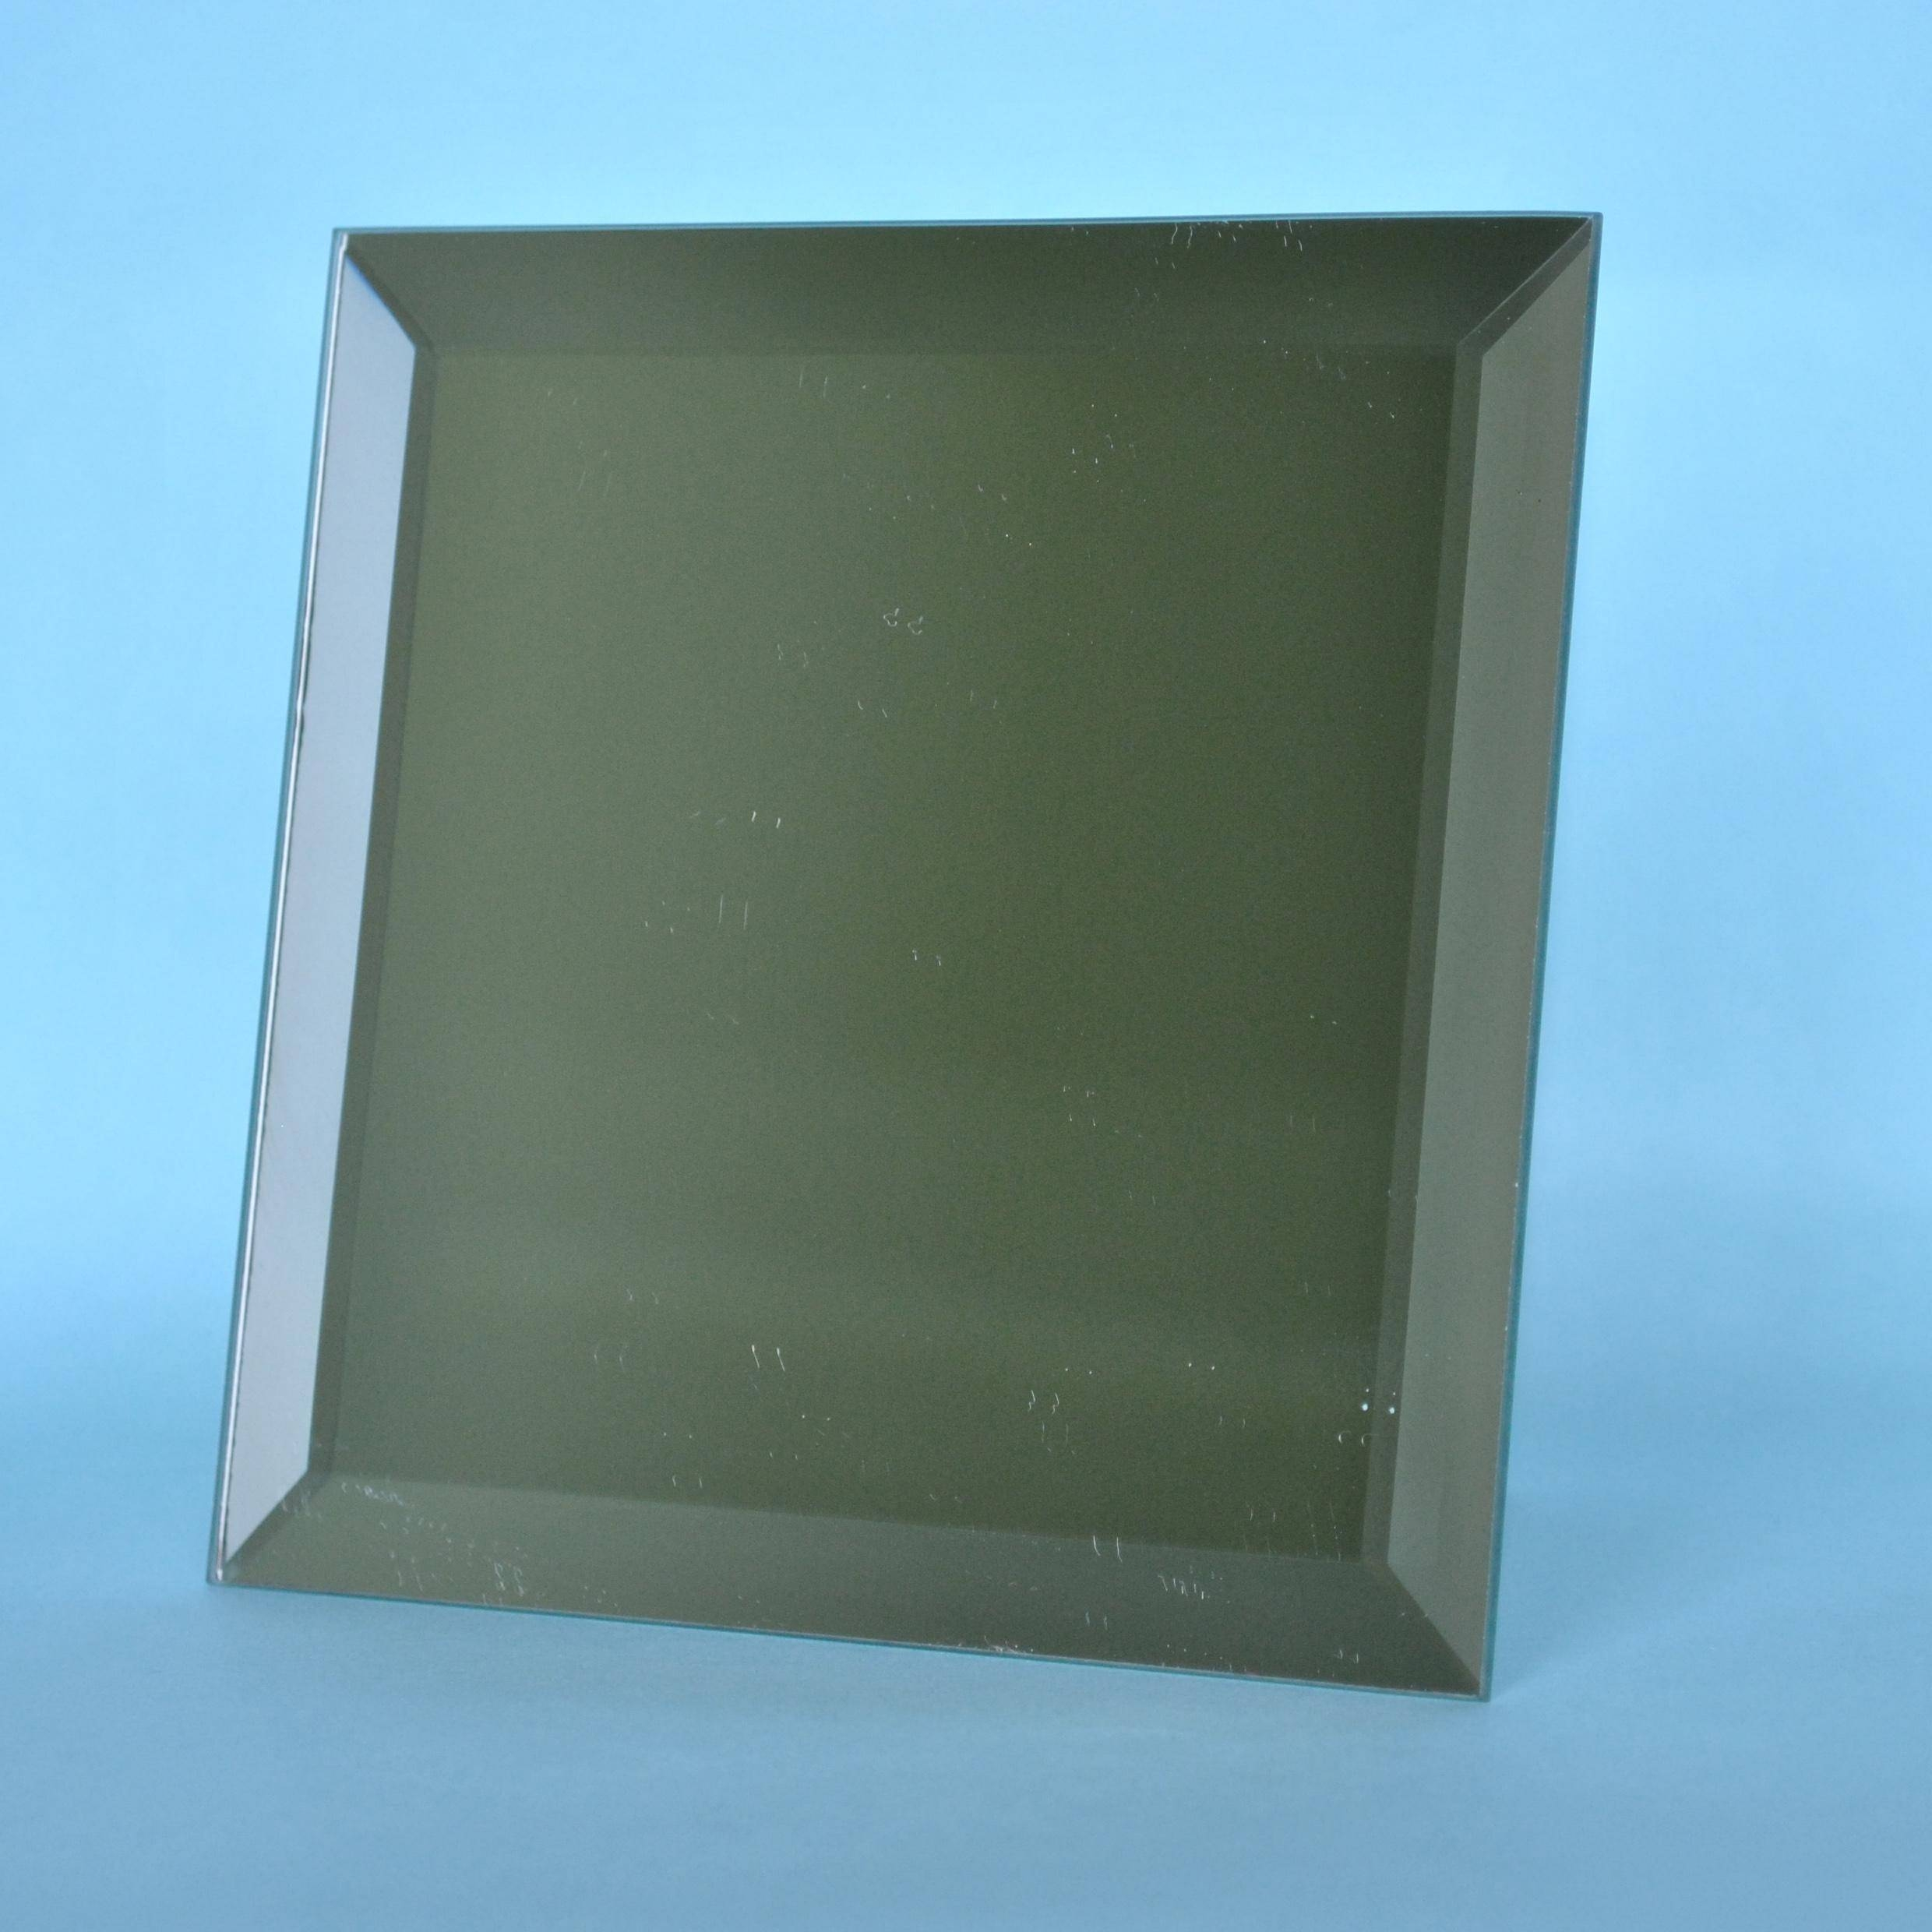 5Mm Square Bevel Edge Silver Mirror, China 5Mm Square Bevel Edge inside Bevel Edged Mirrors (Image 2 of 15)